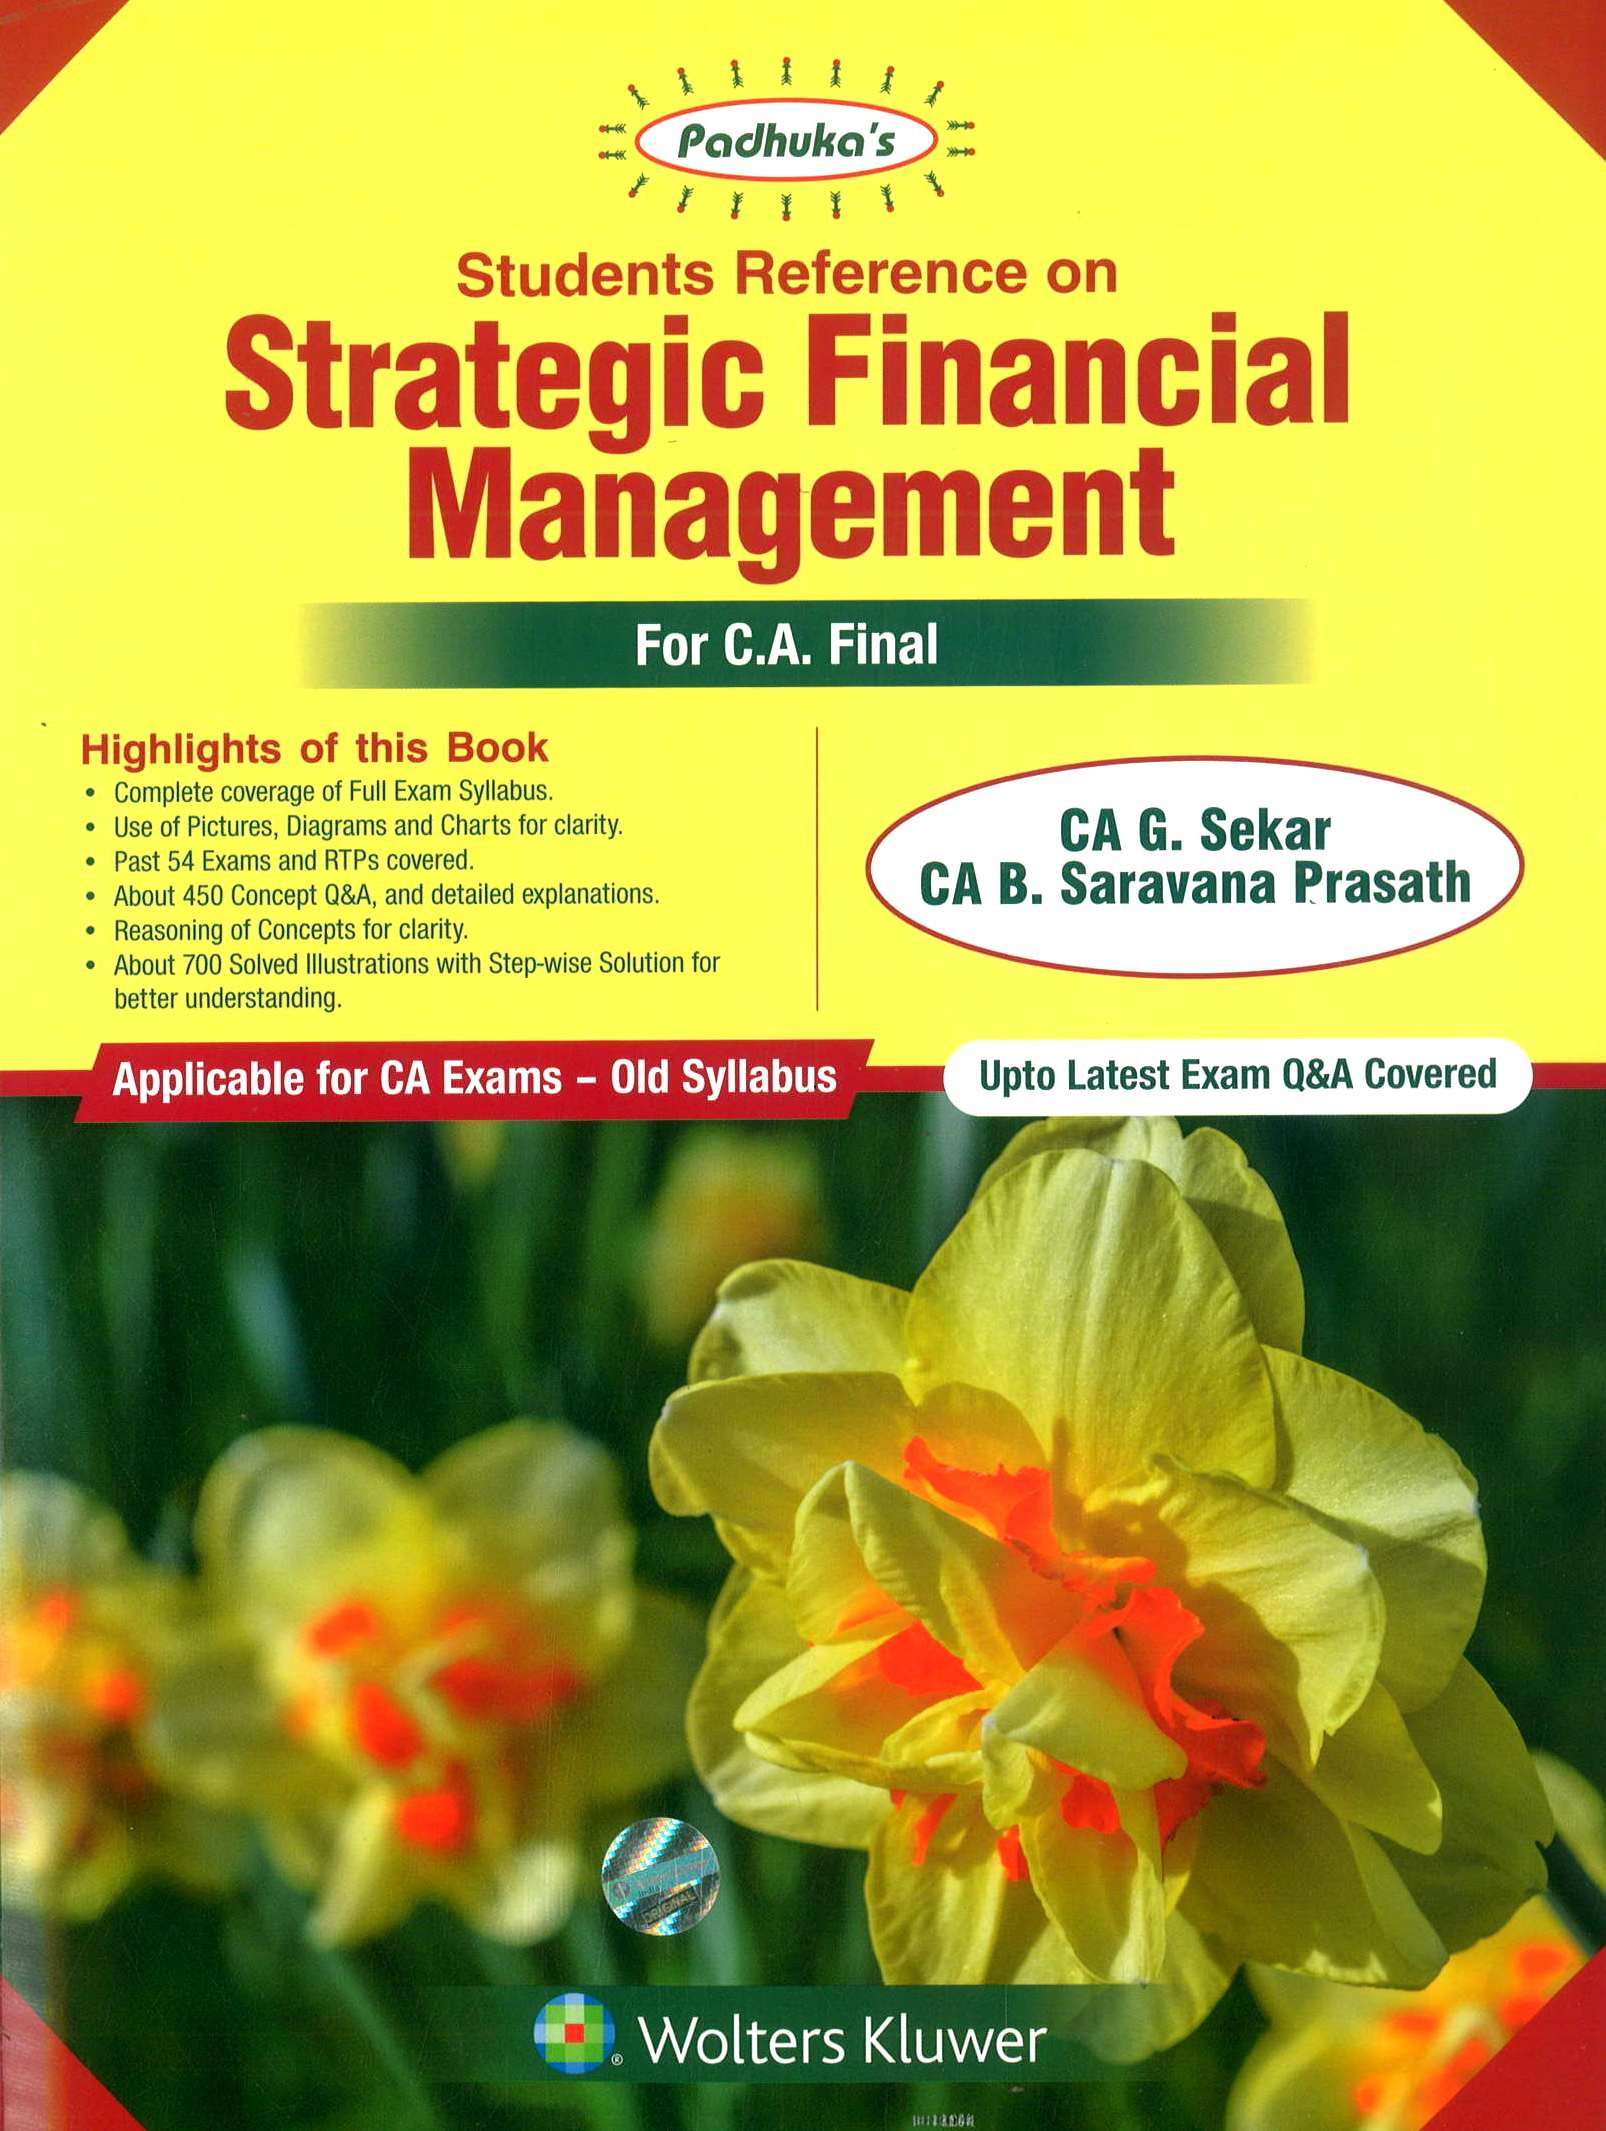 Wolters Kluwer Padhuka Students' Reference on Strategic Financial Management for CA Final Nov 2018 exam by CA G. Sekar and CA B. Saravana Prasath (Wolters Kluwer Publishing) Edition 2018